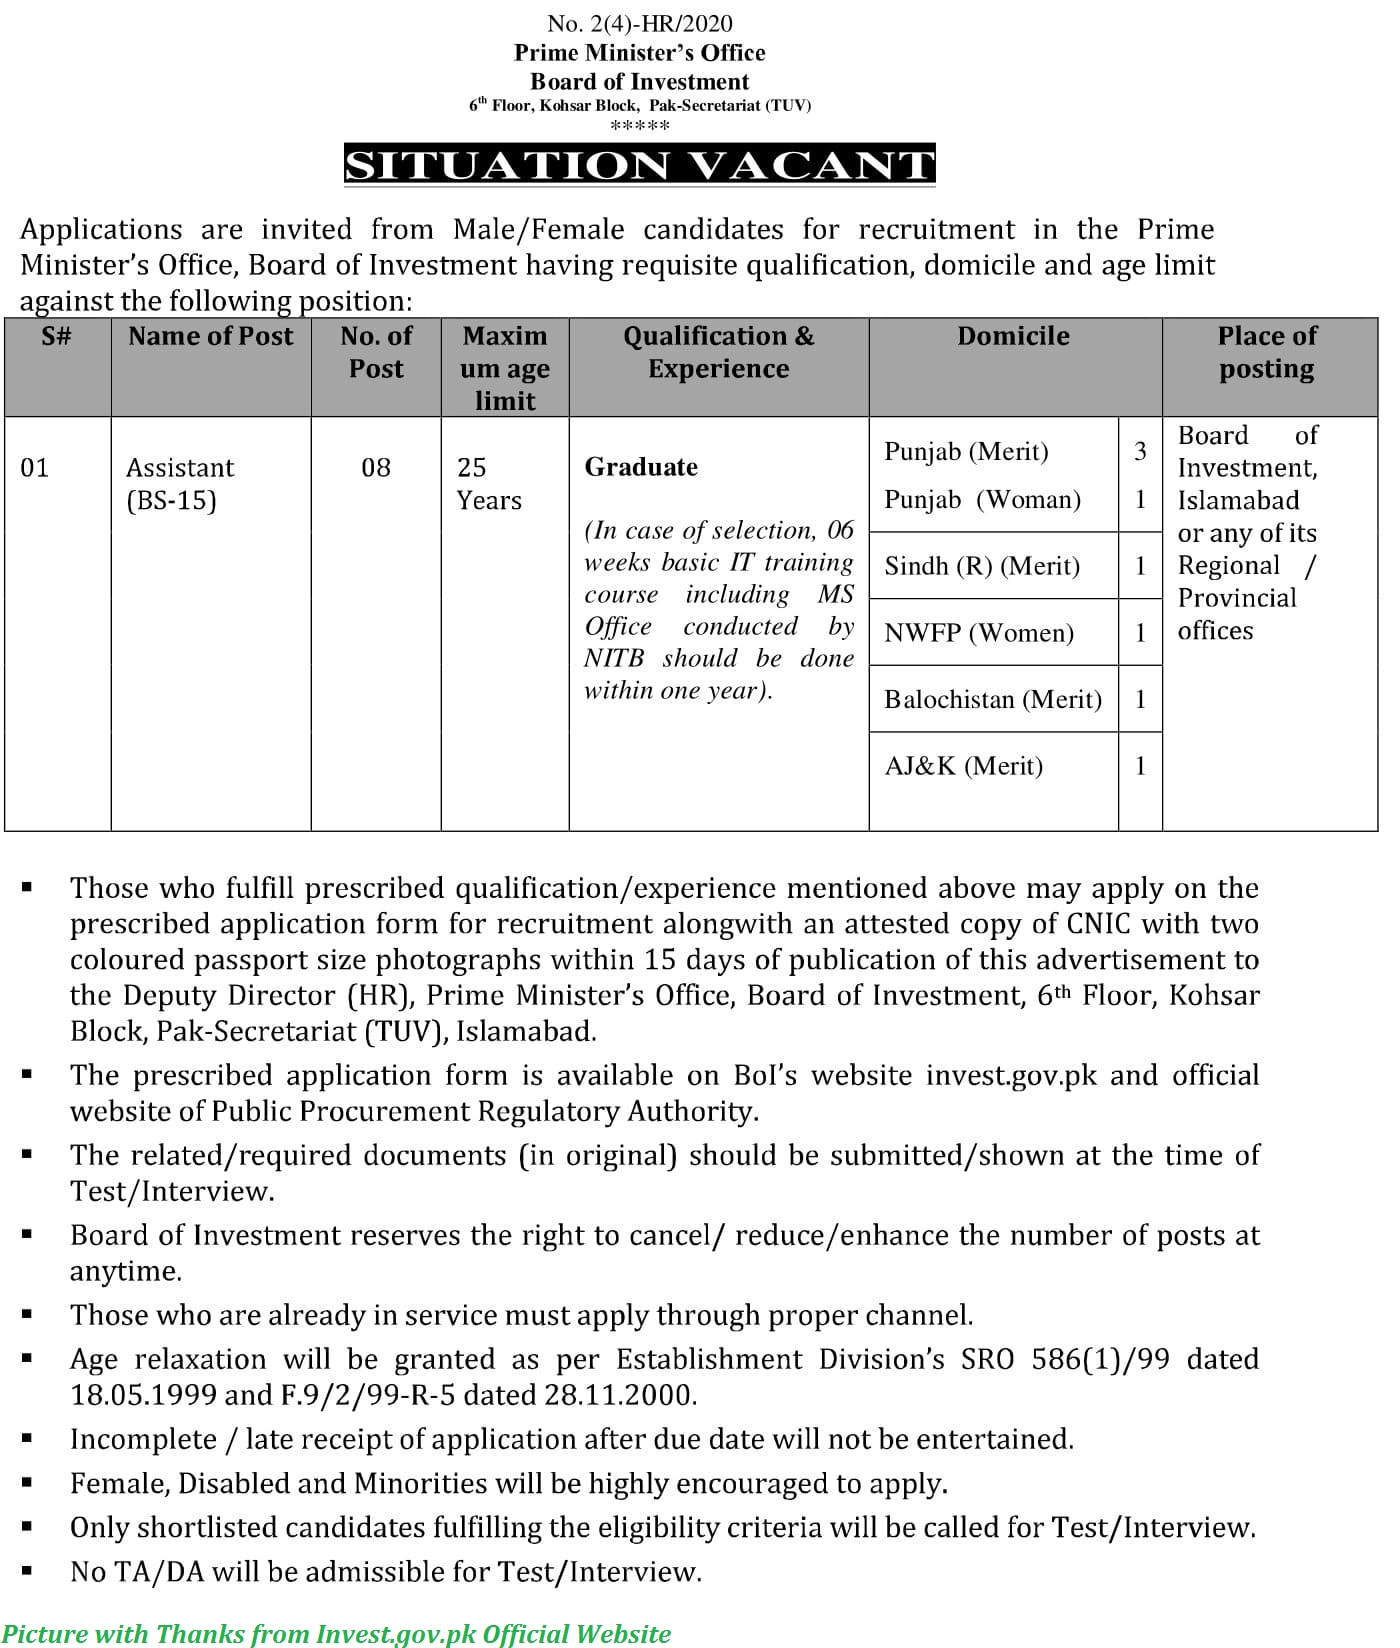 Prime Minister Office Board of Investment Jobs 2020 - Latest Assistant Jobs in Prime Ministers Office